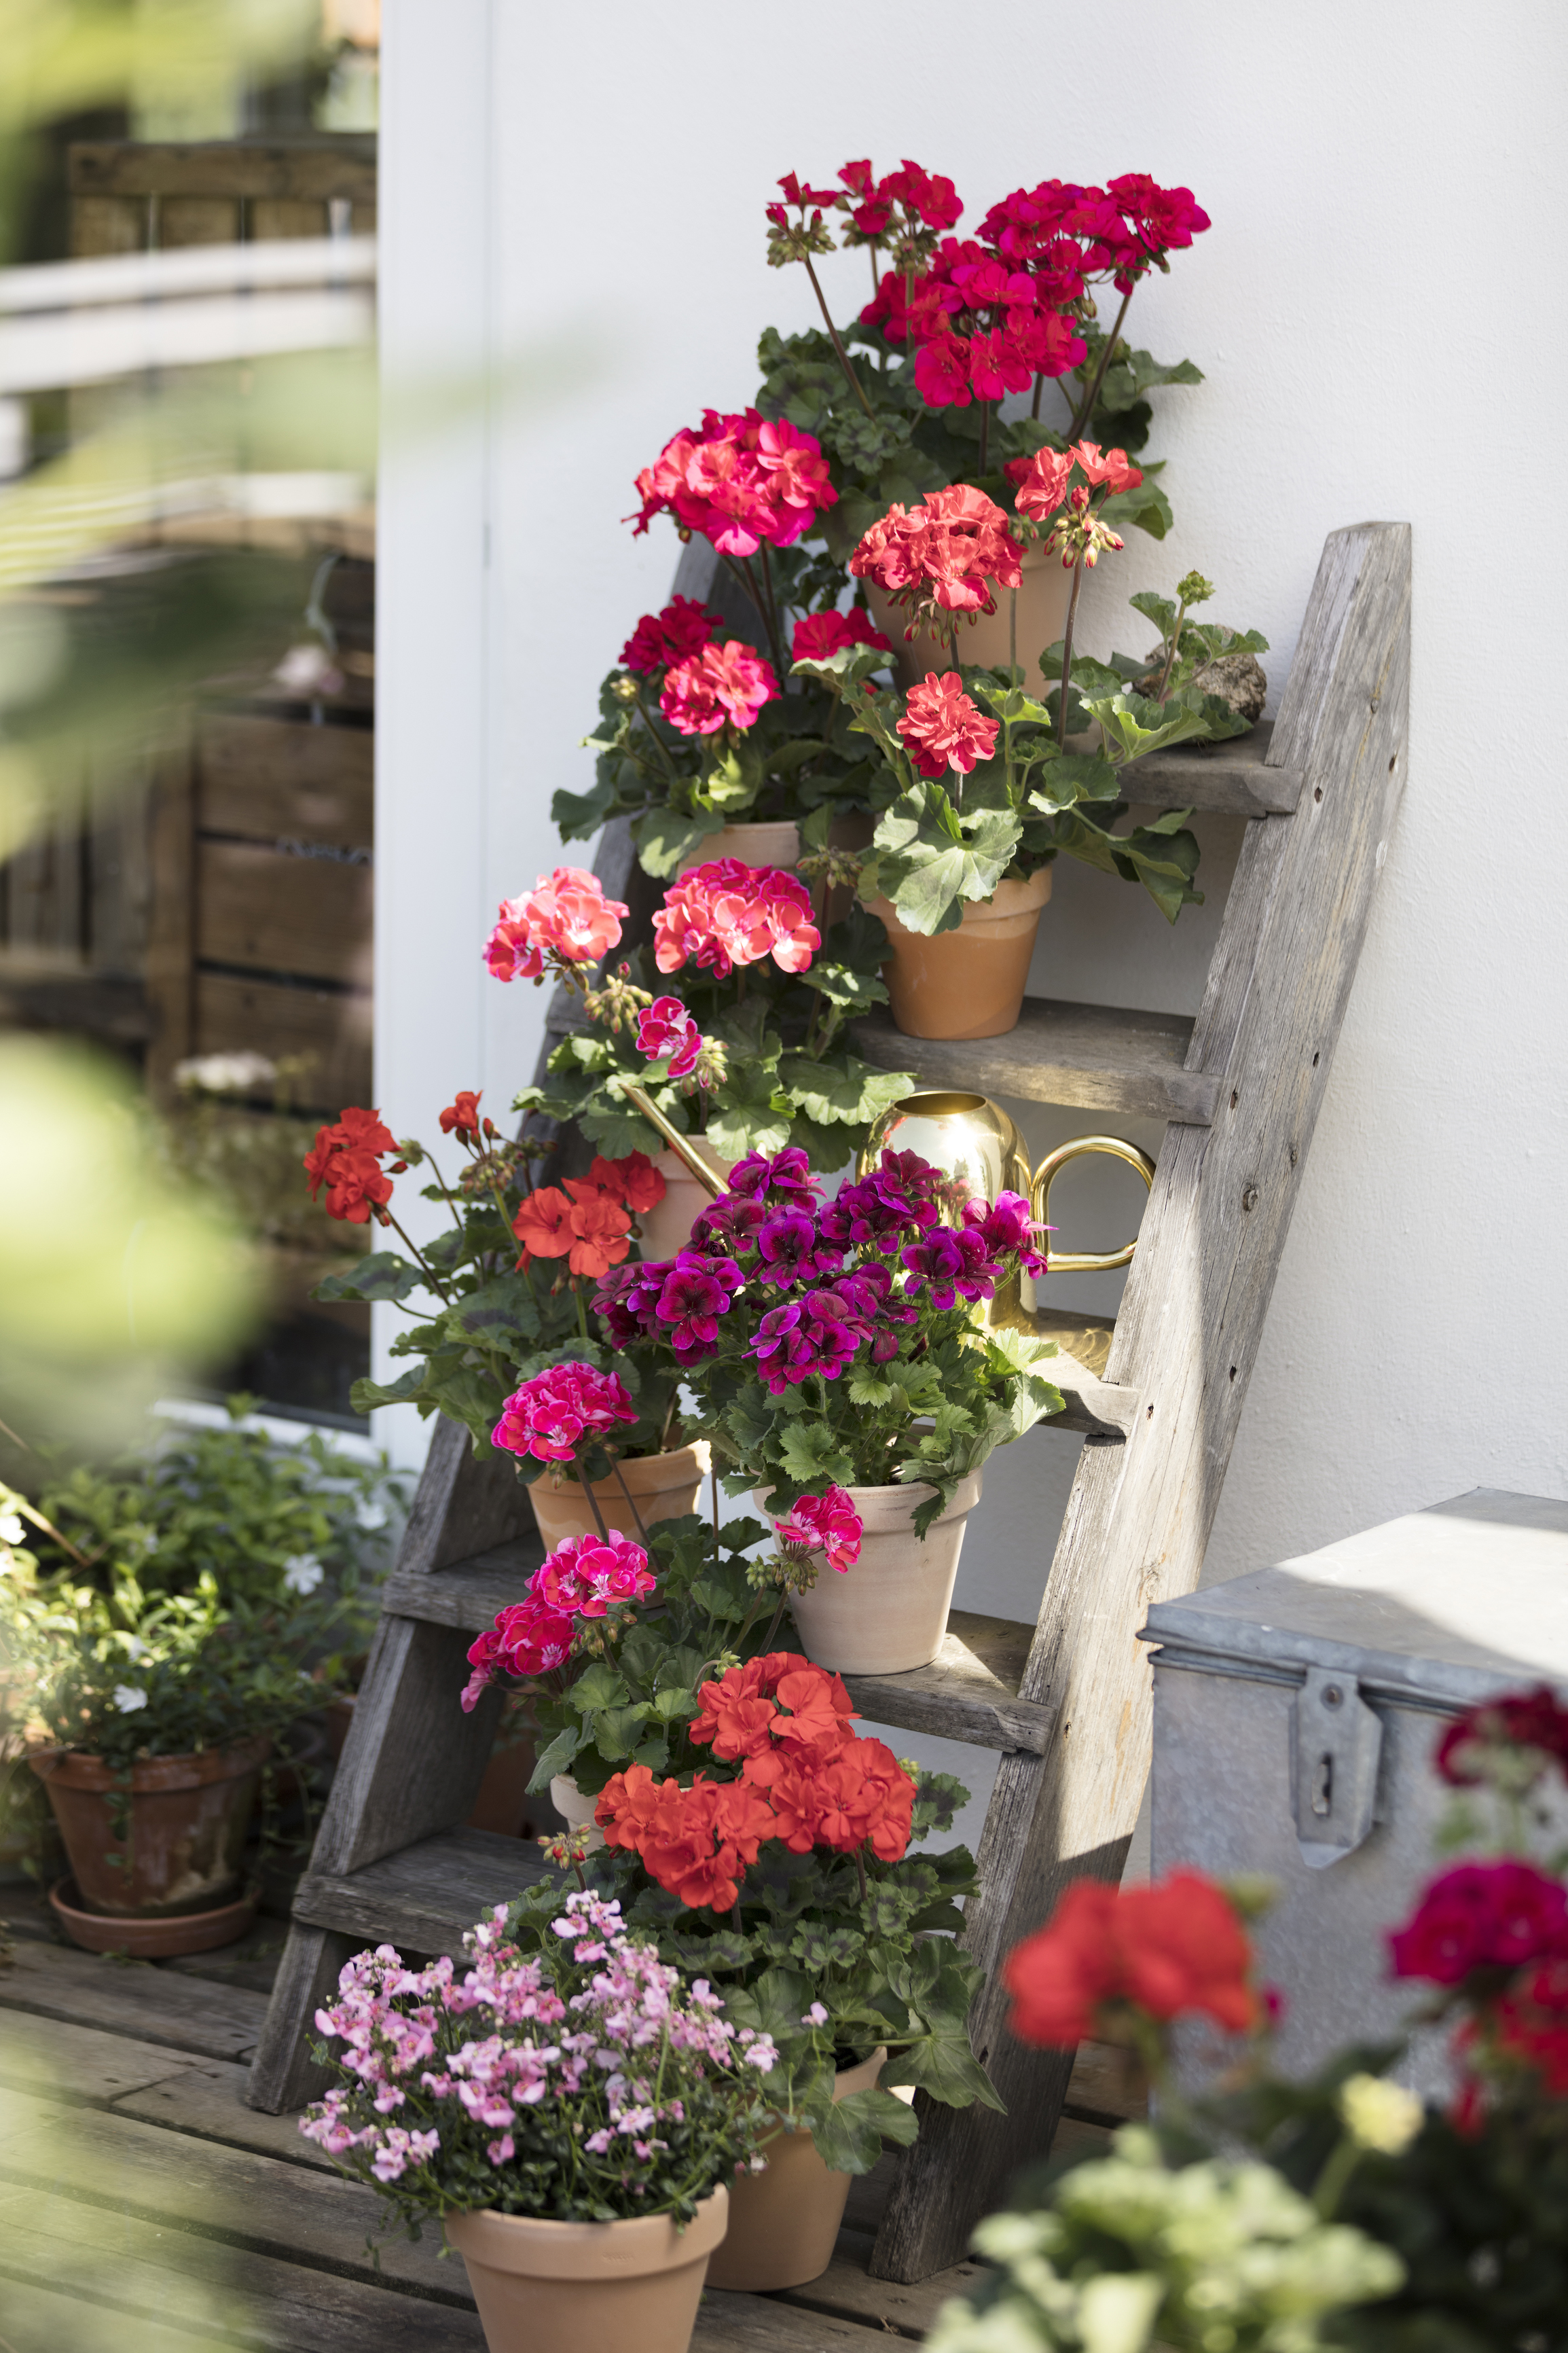 pelargoniums on the rungs of a ladder (Pelargonium for Europe/PA)